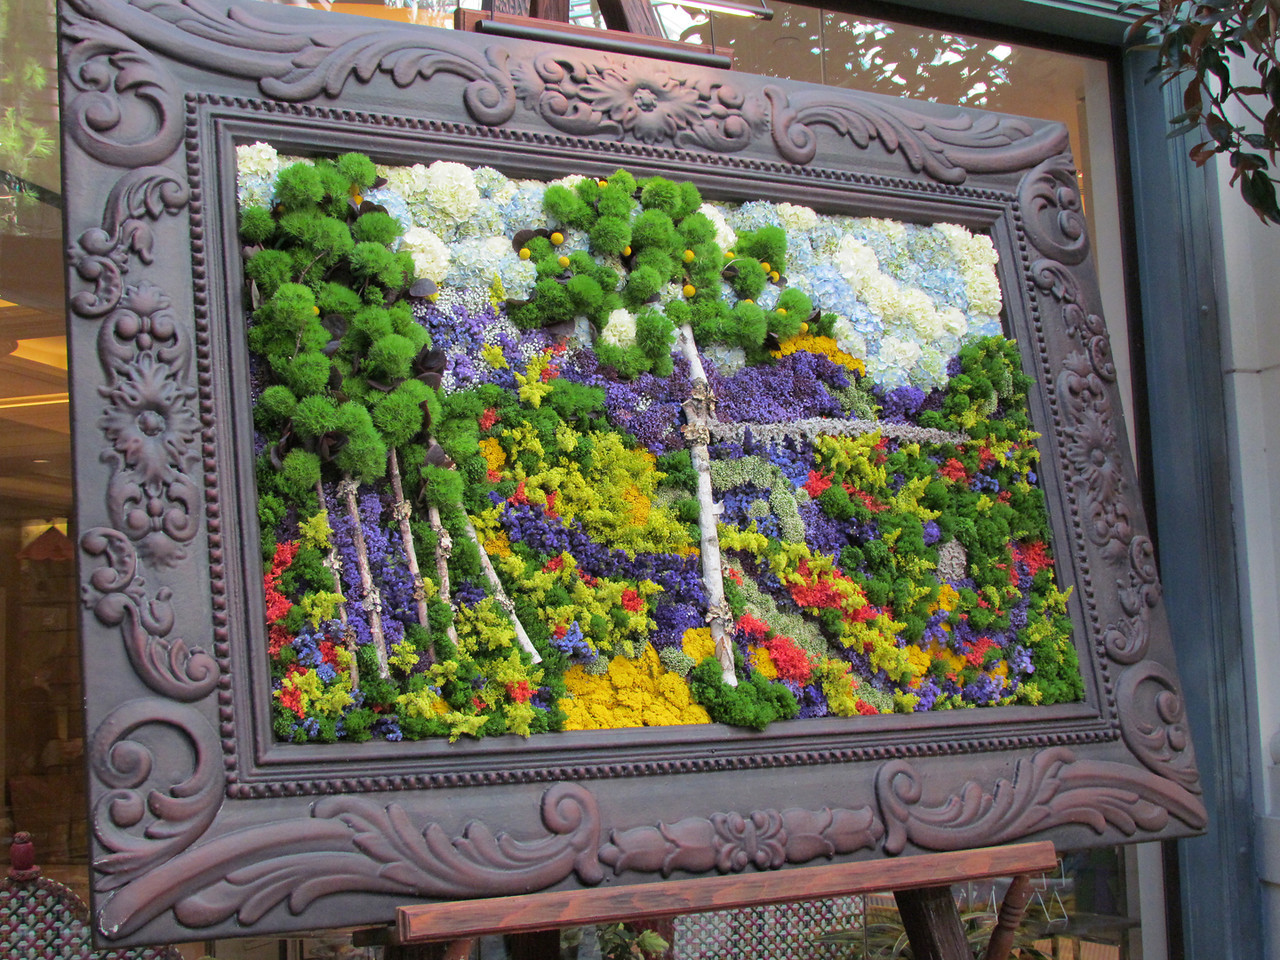 A landscape created with living plants and flowers.